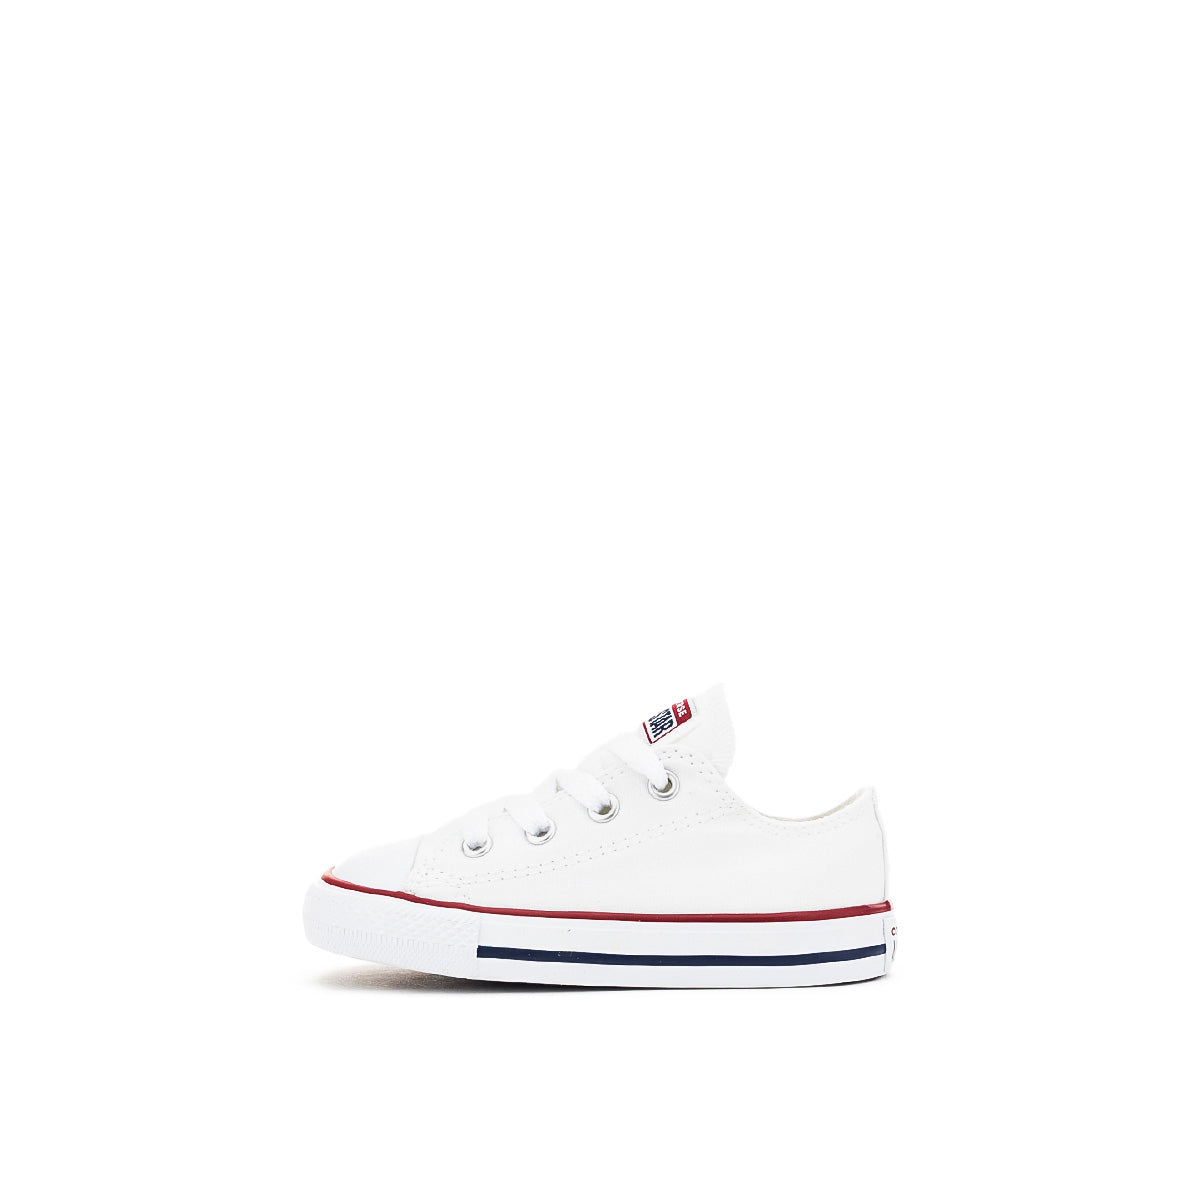 Converse All Star Chucks Ox Canvas 7J256C-